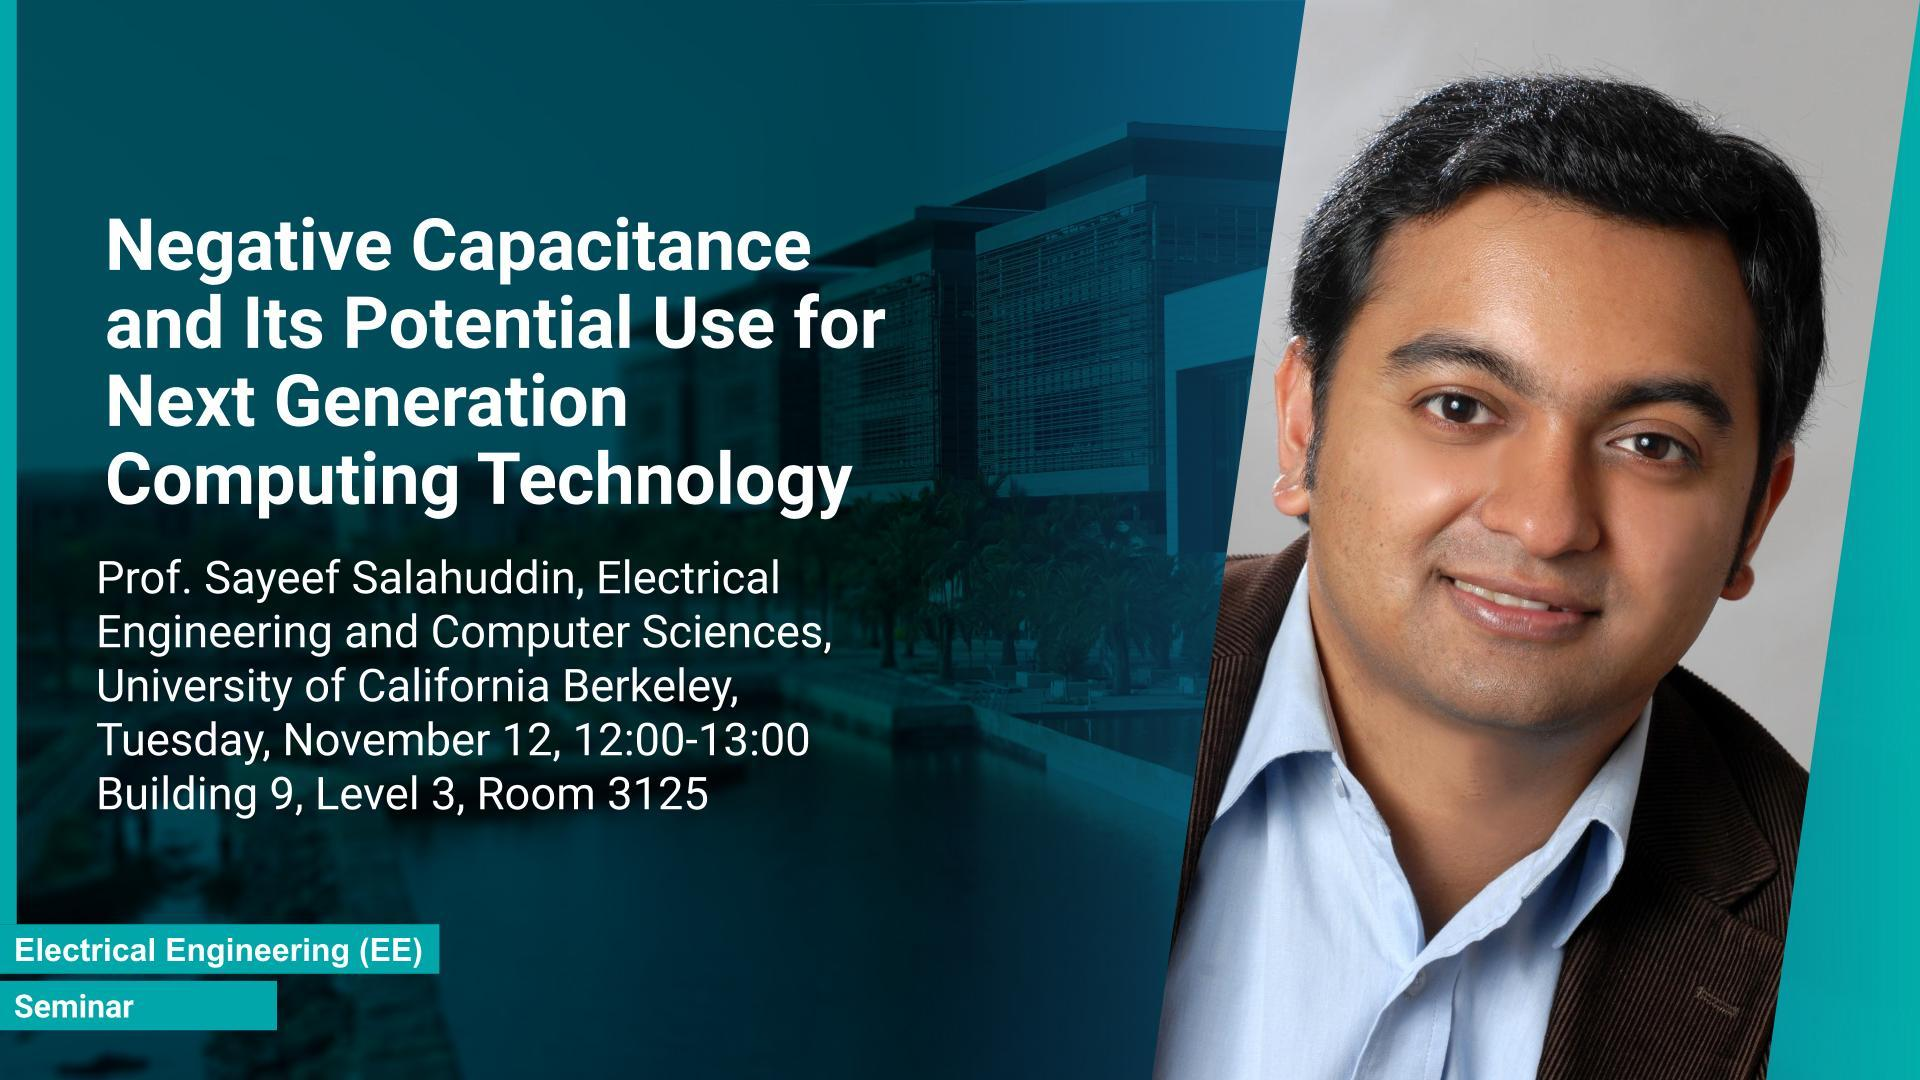 KAUST CEMSE EE Seminar Sayeef Salahuddin negative capacitance for next generation computing-technology.jpg